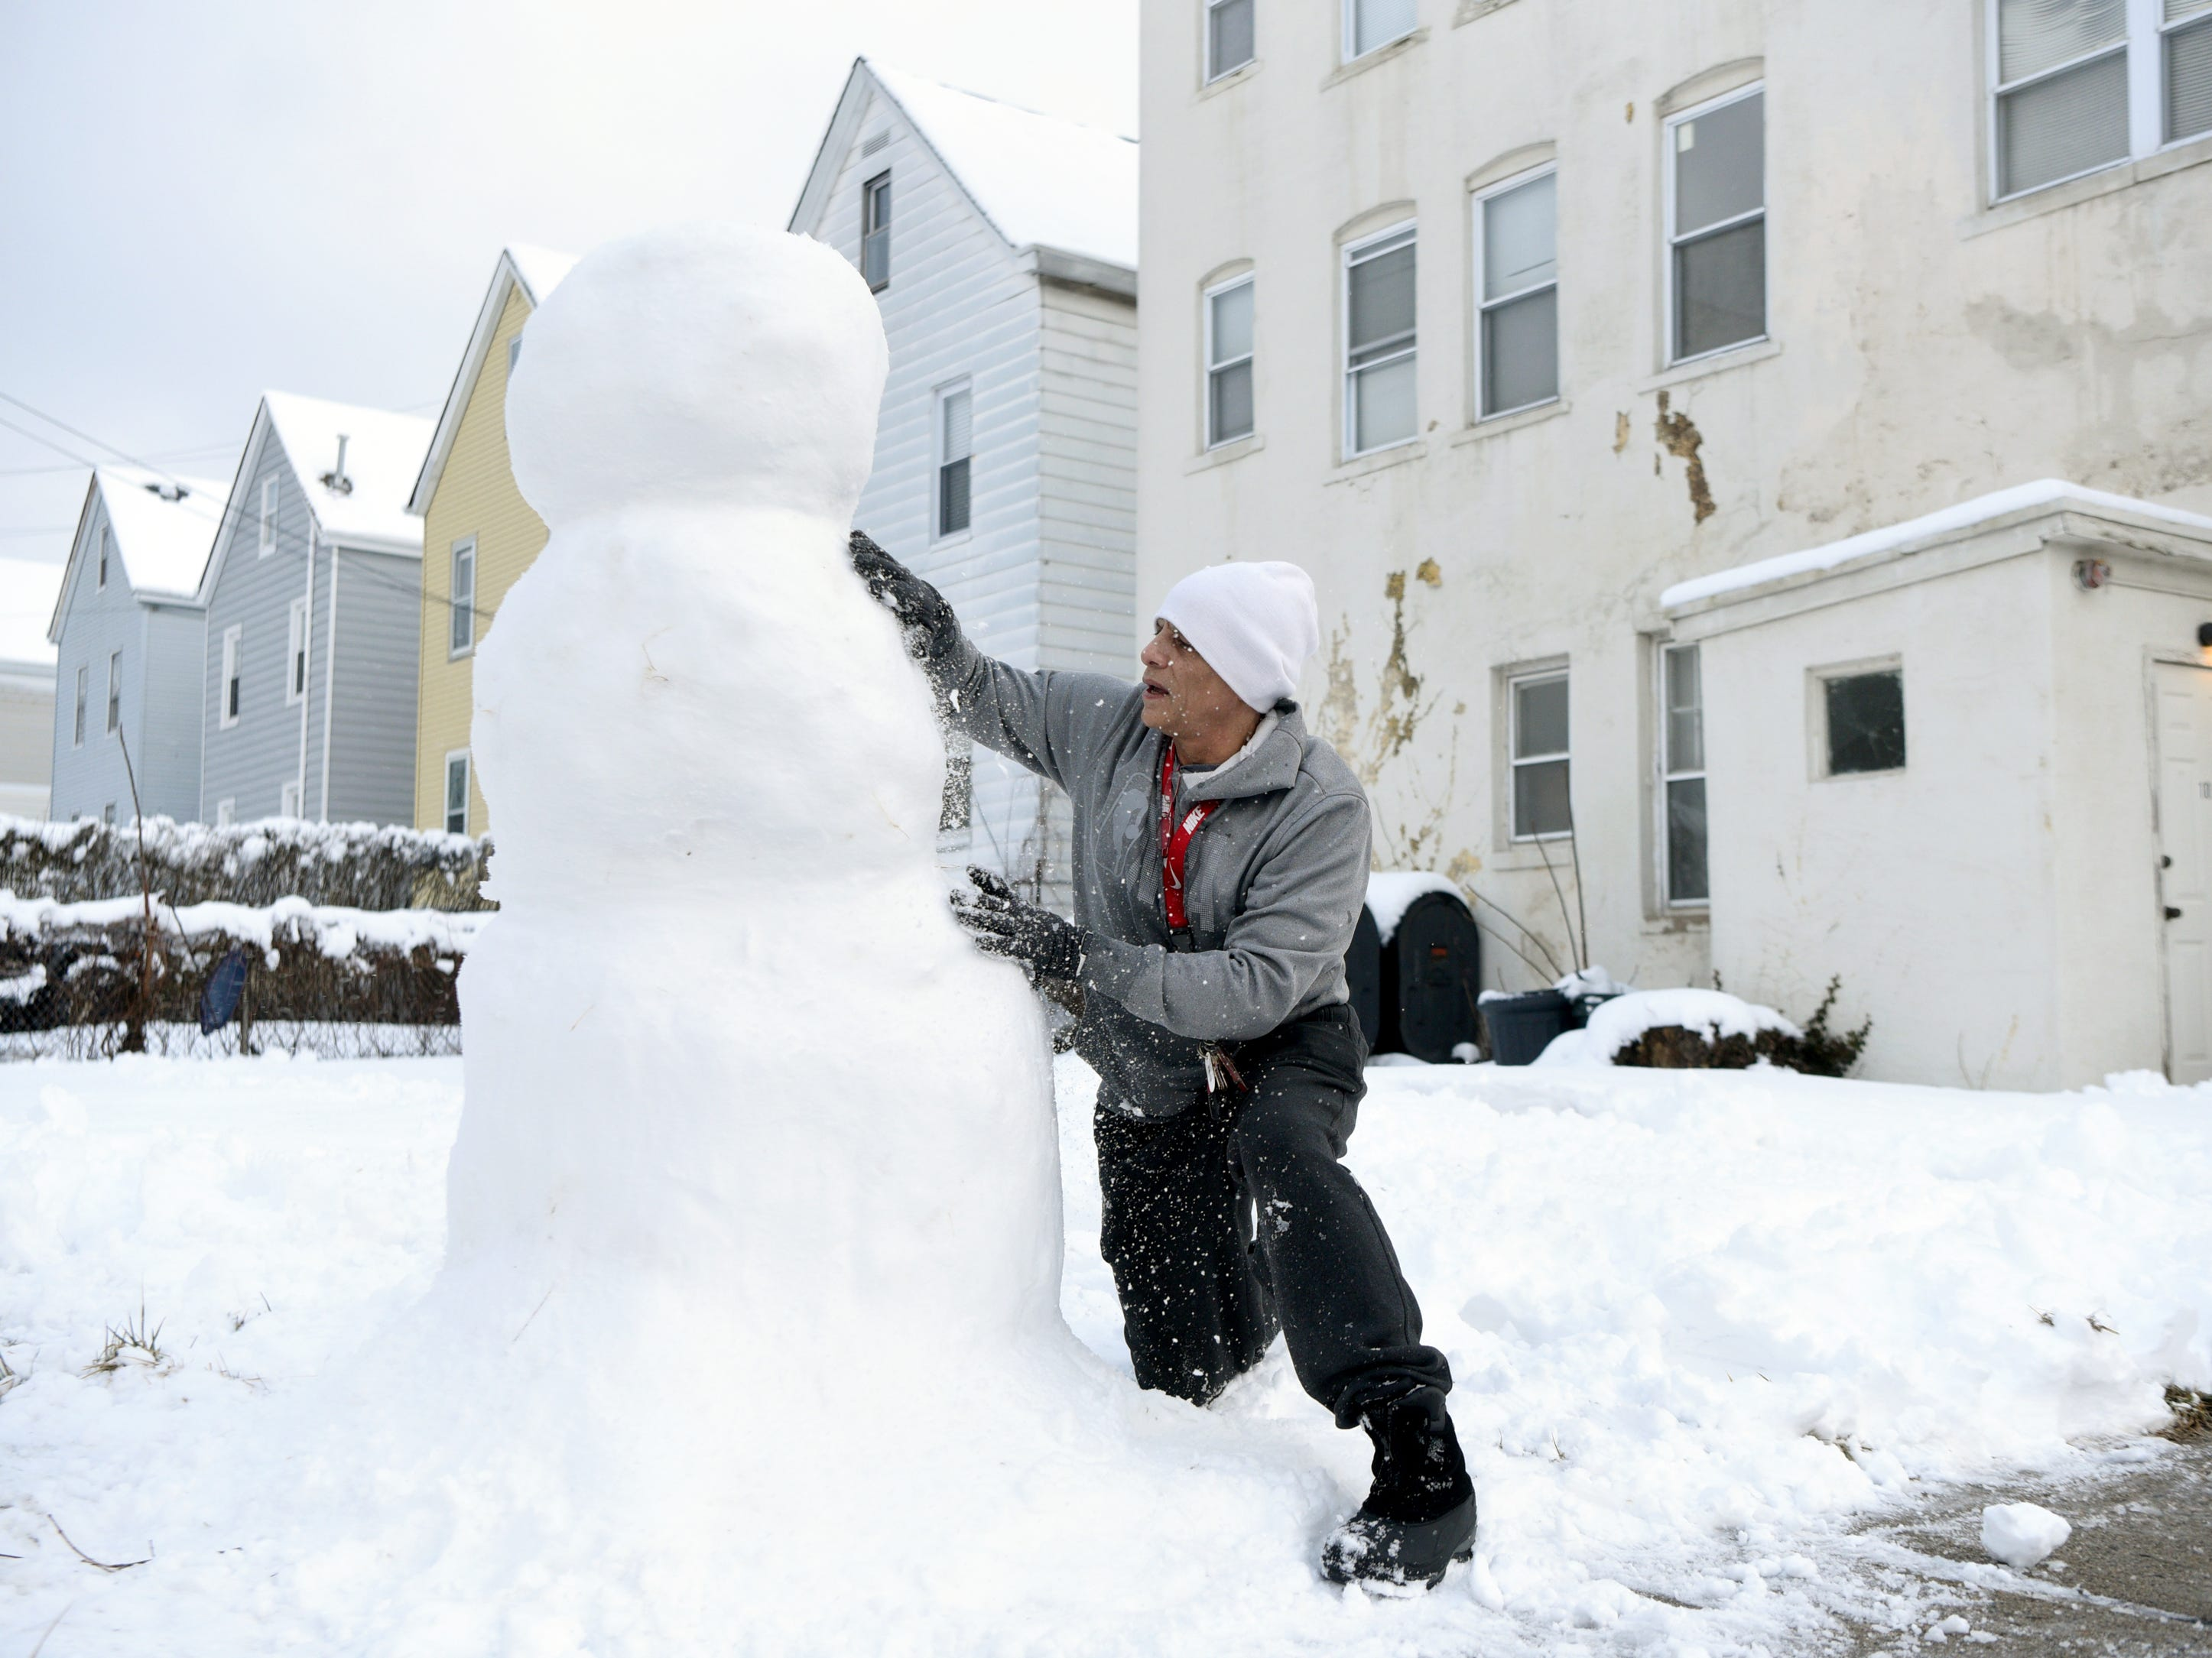 Michael Rivera builds a snowman on the lawn of his Elm St. home for his daughters before they wake up on Monday, March 4, 2019.